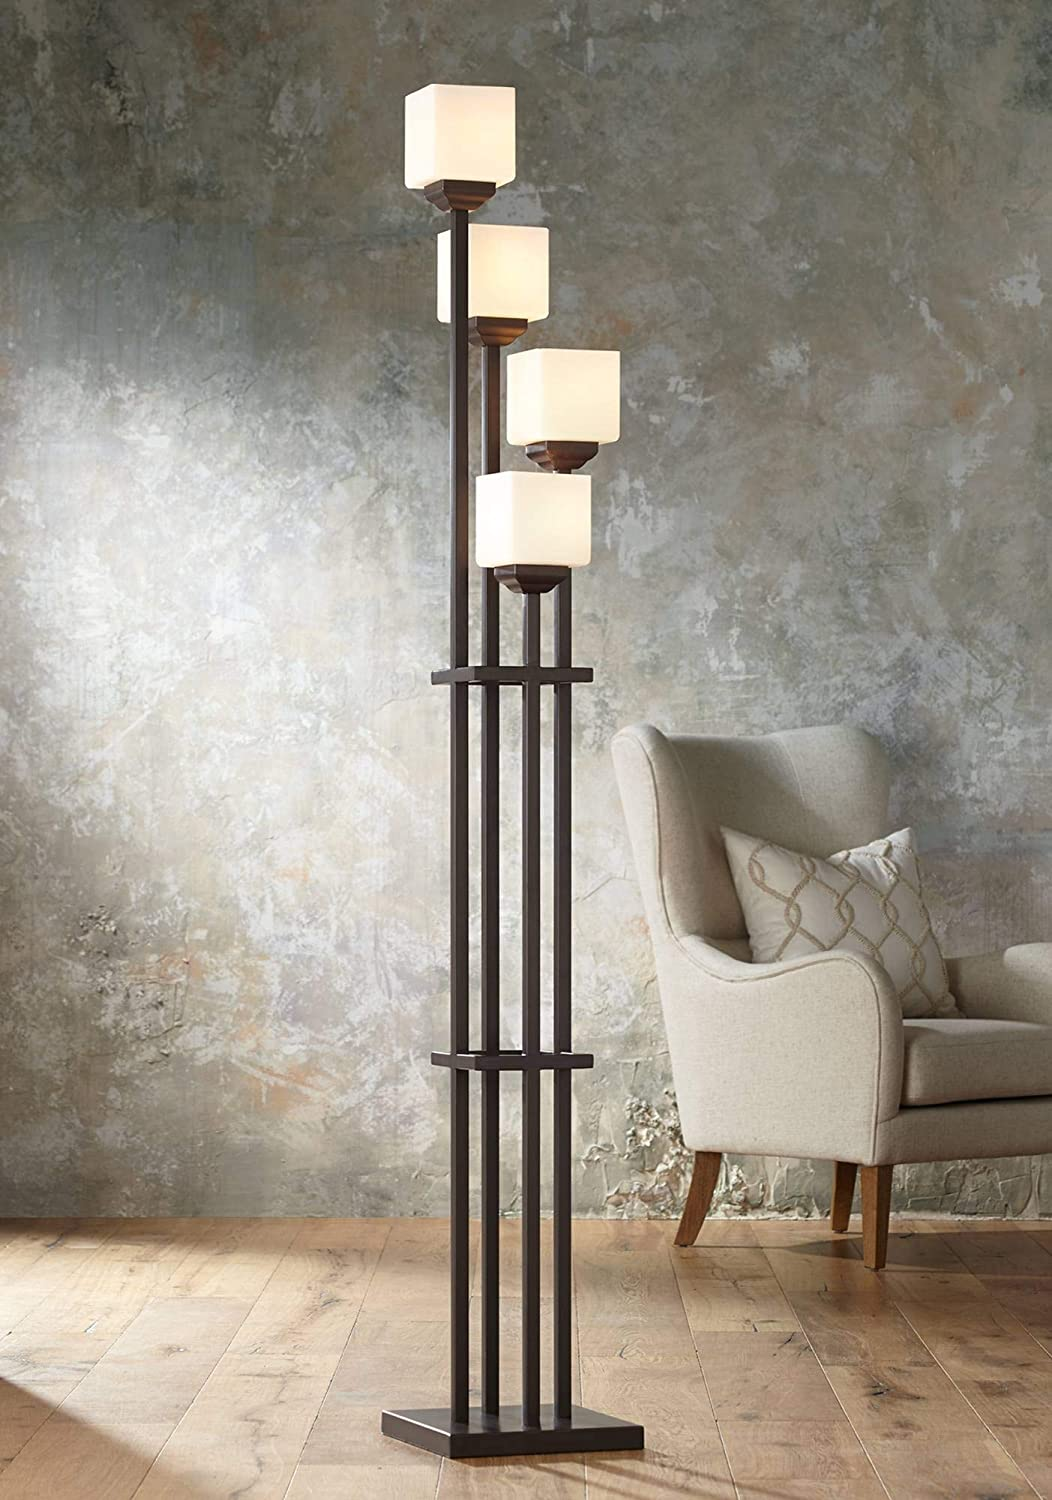 Light Tree Mission Torchiere Floor Lamp 4 Light Bronze Iron Square Sided White Glass Shades For